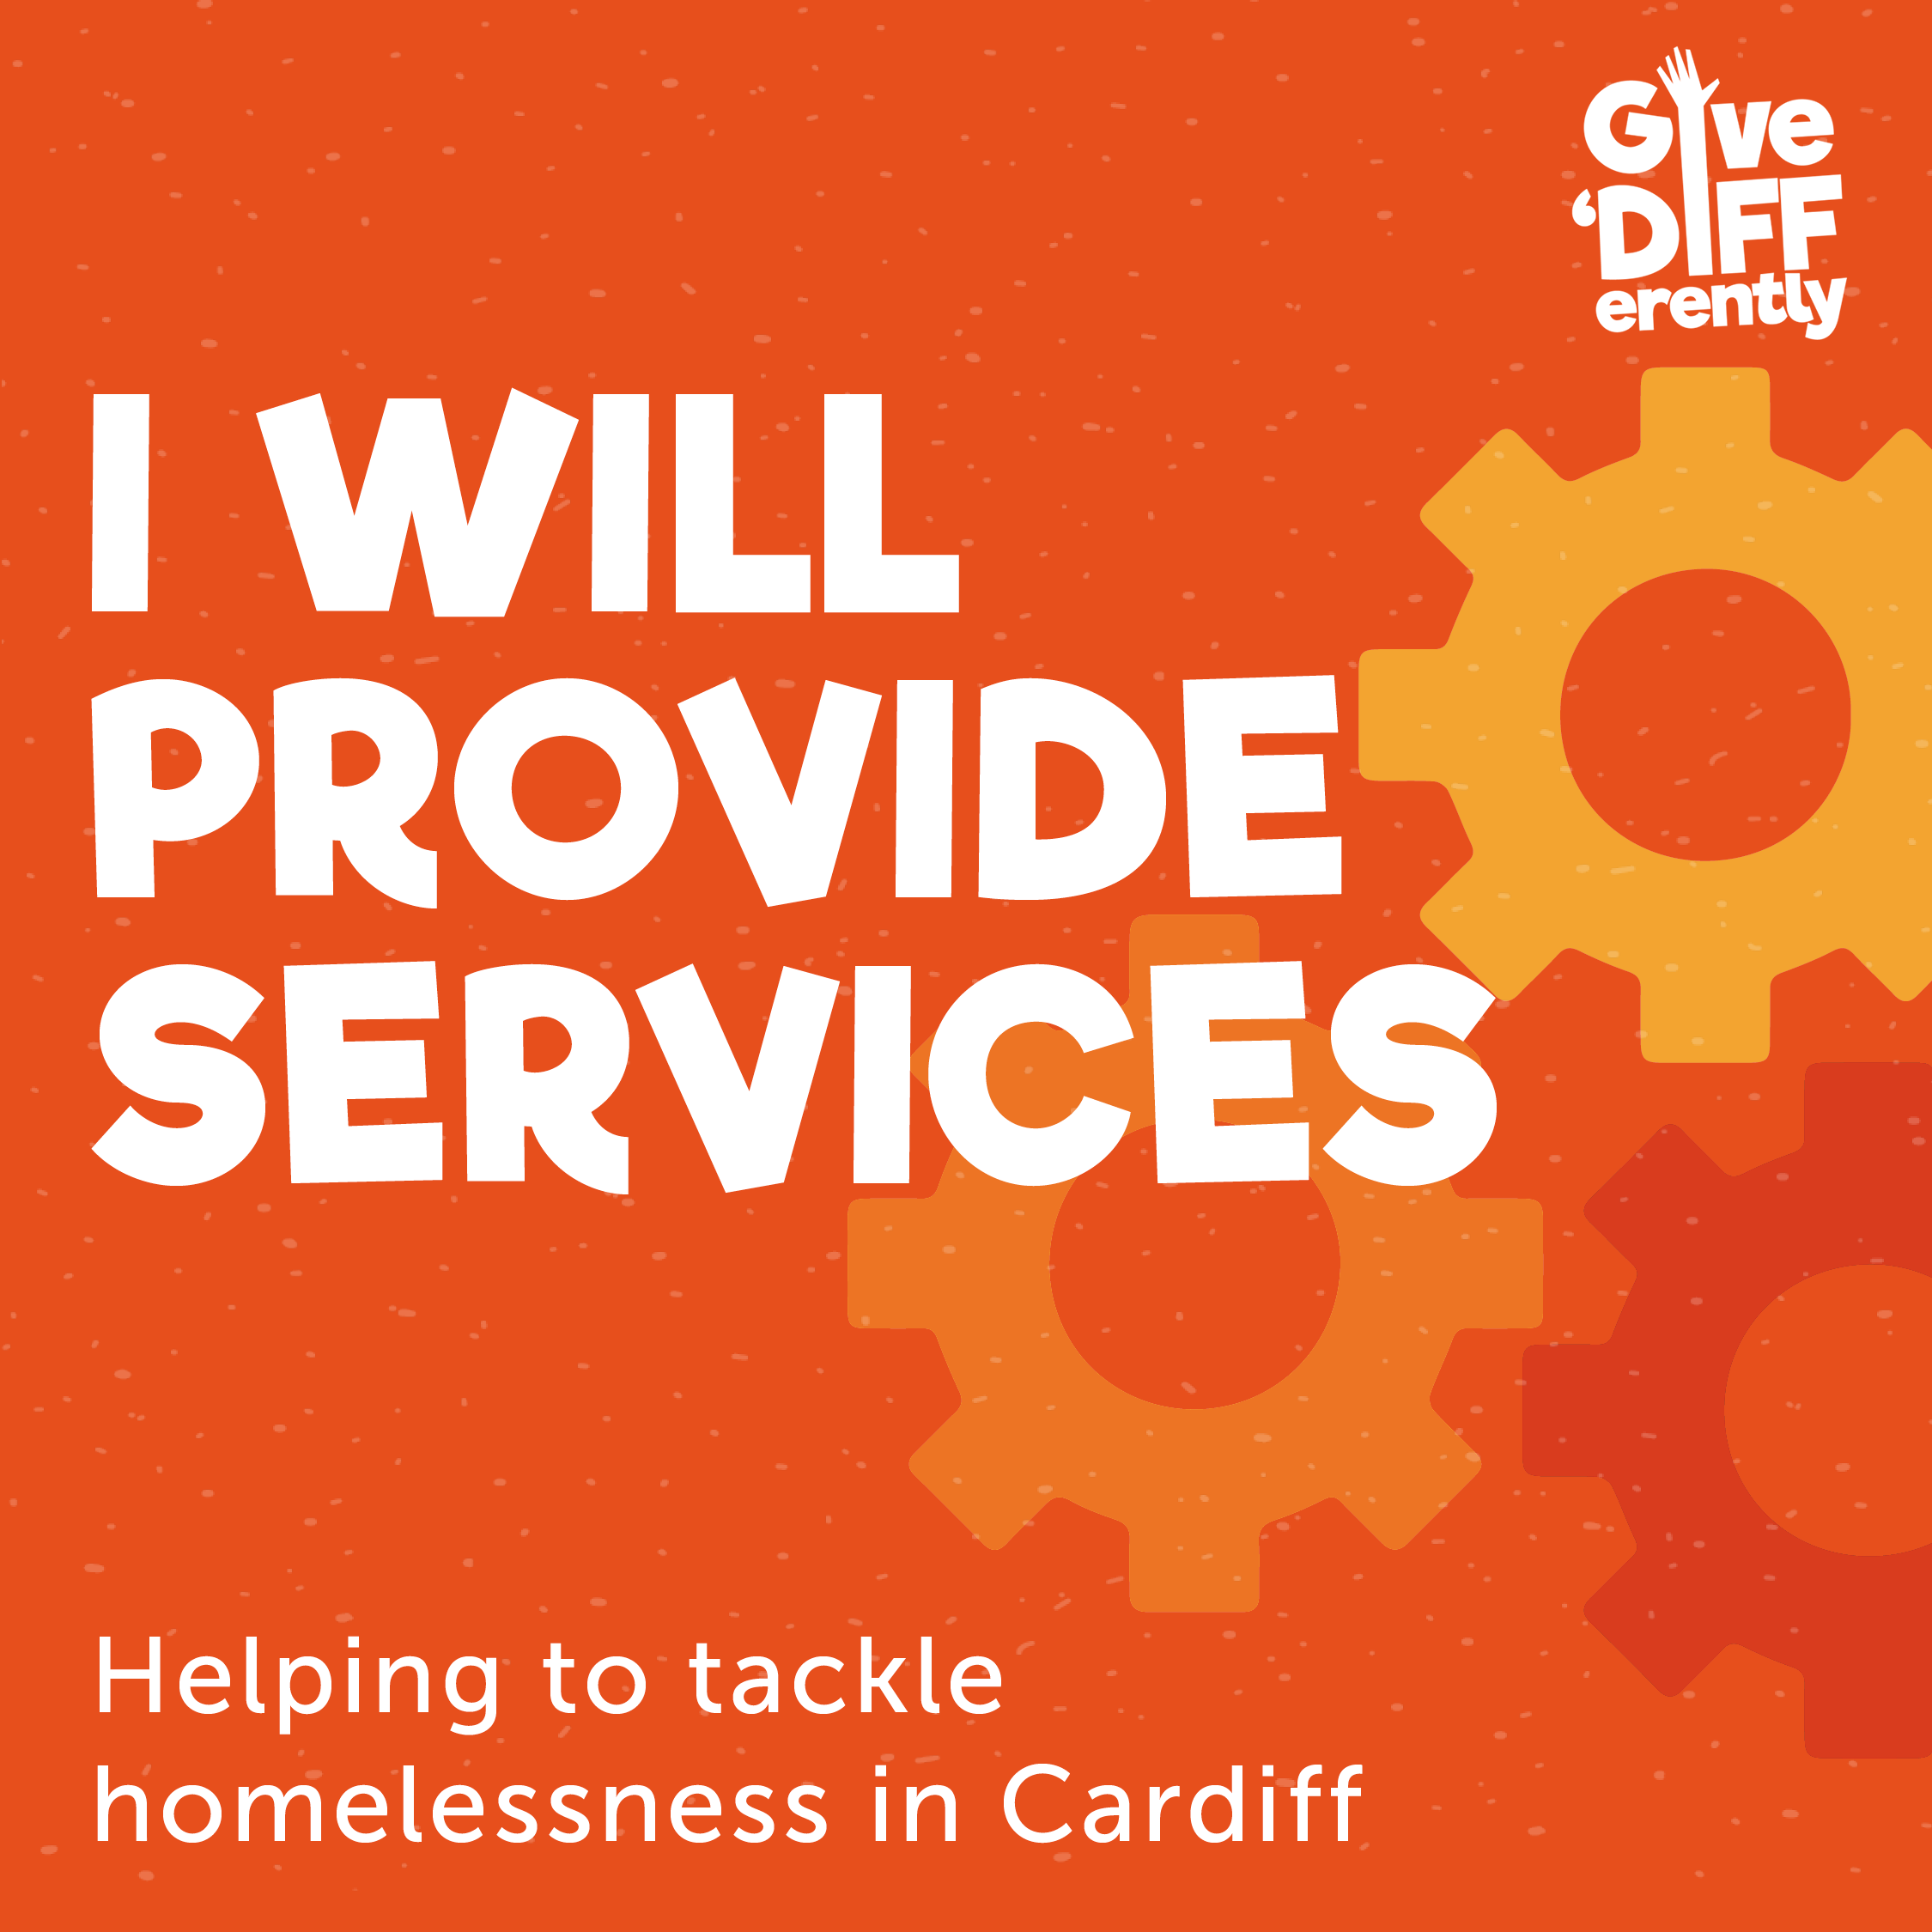 https://www.forcardiff.com/givedifferently/wp-content/uploads/2019/02/PLEDGES6.png